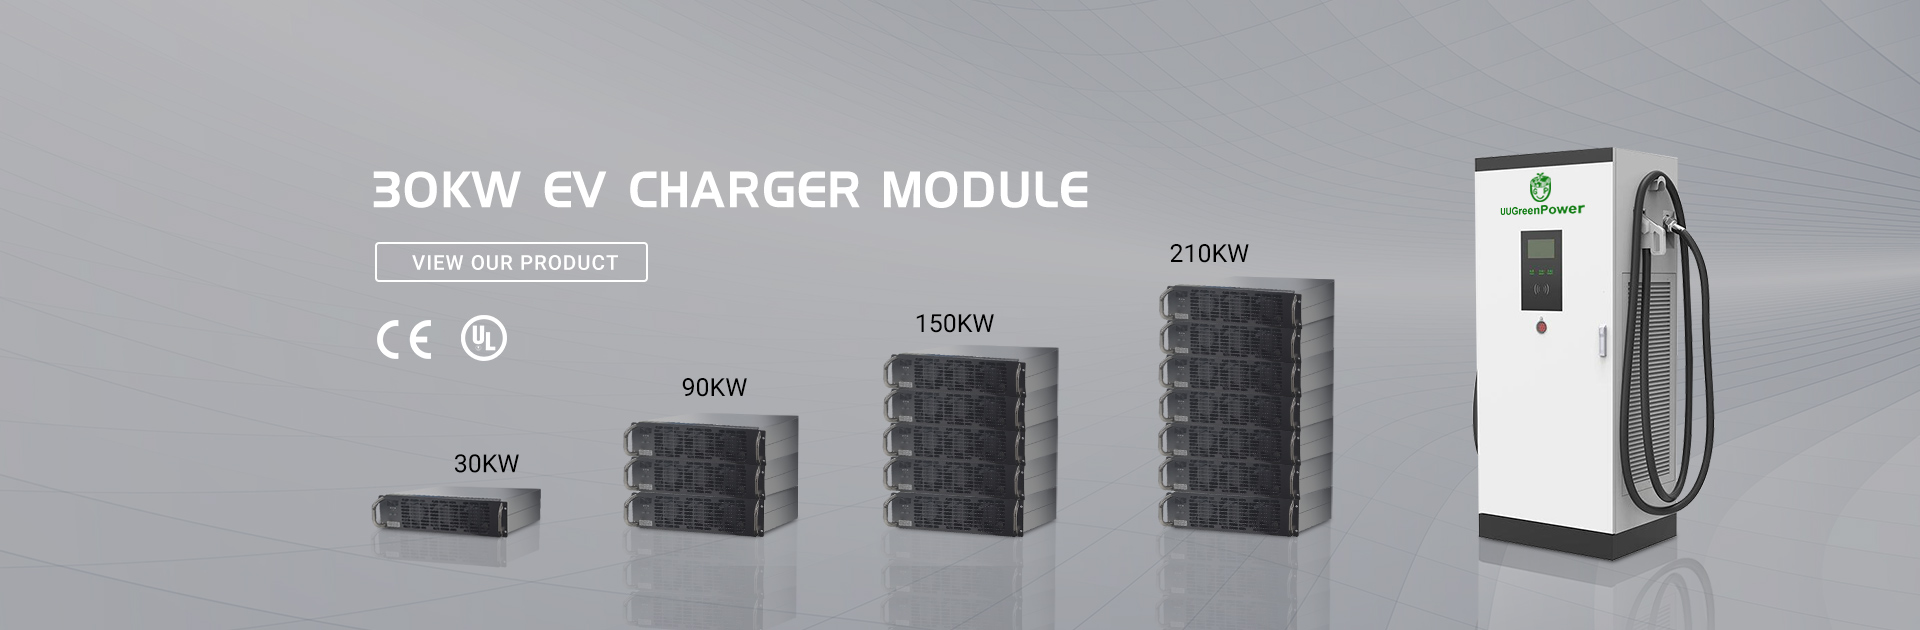 SUPER WIDE RANGE CONSTANT POWER CHARGING MODULE